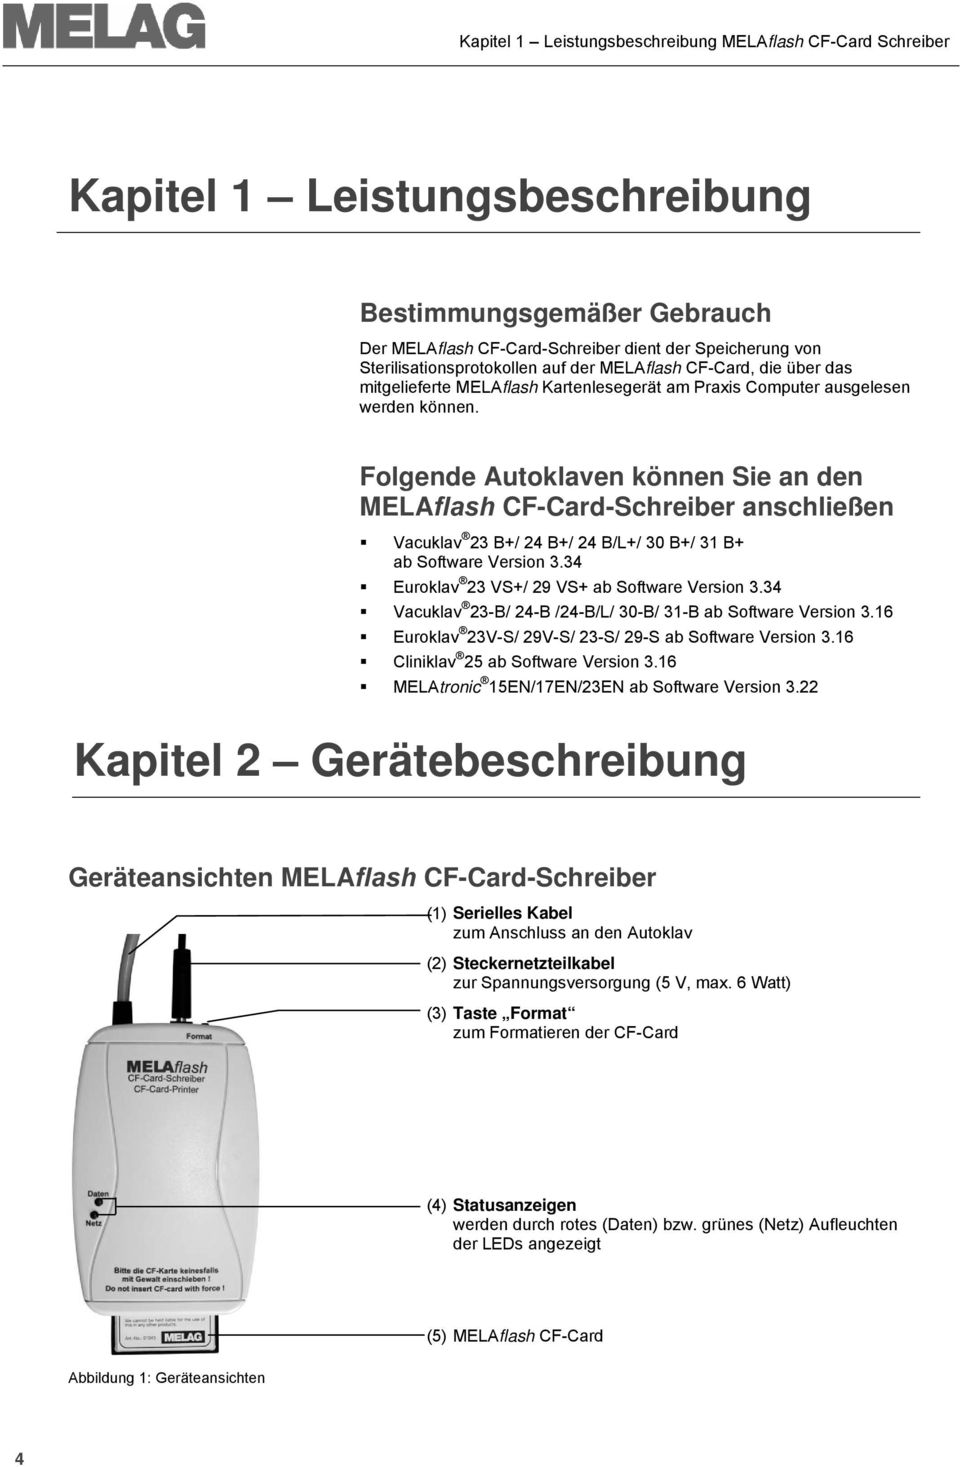 Folgende Autoklaven können Sie an den MELAflash CF-Card-Schreiber anschließen Vacuklav 23 B+/ 24 B+/ 24 B/L+/ 30 B+/ 31 B+ ab Software Version 3.34 Euroklav 23 VS+/ 29 VS+ ab Software Version 3.